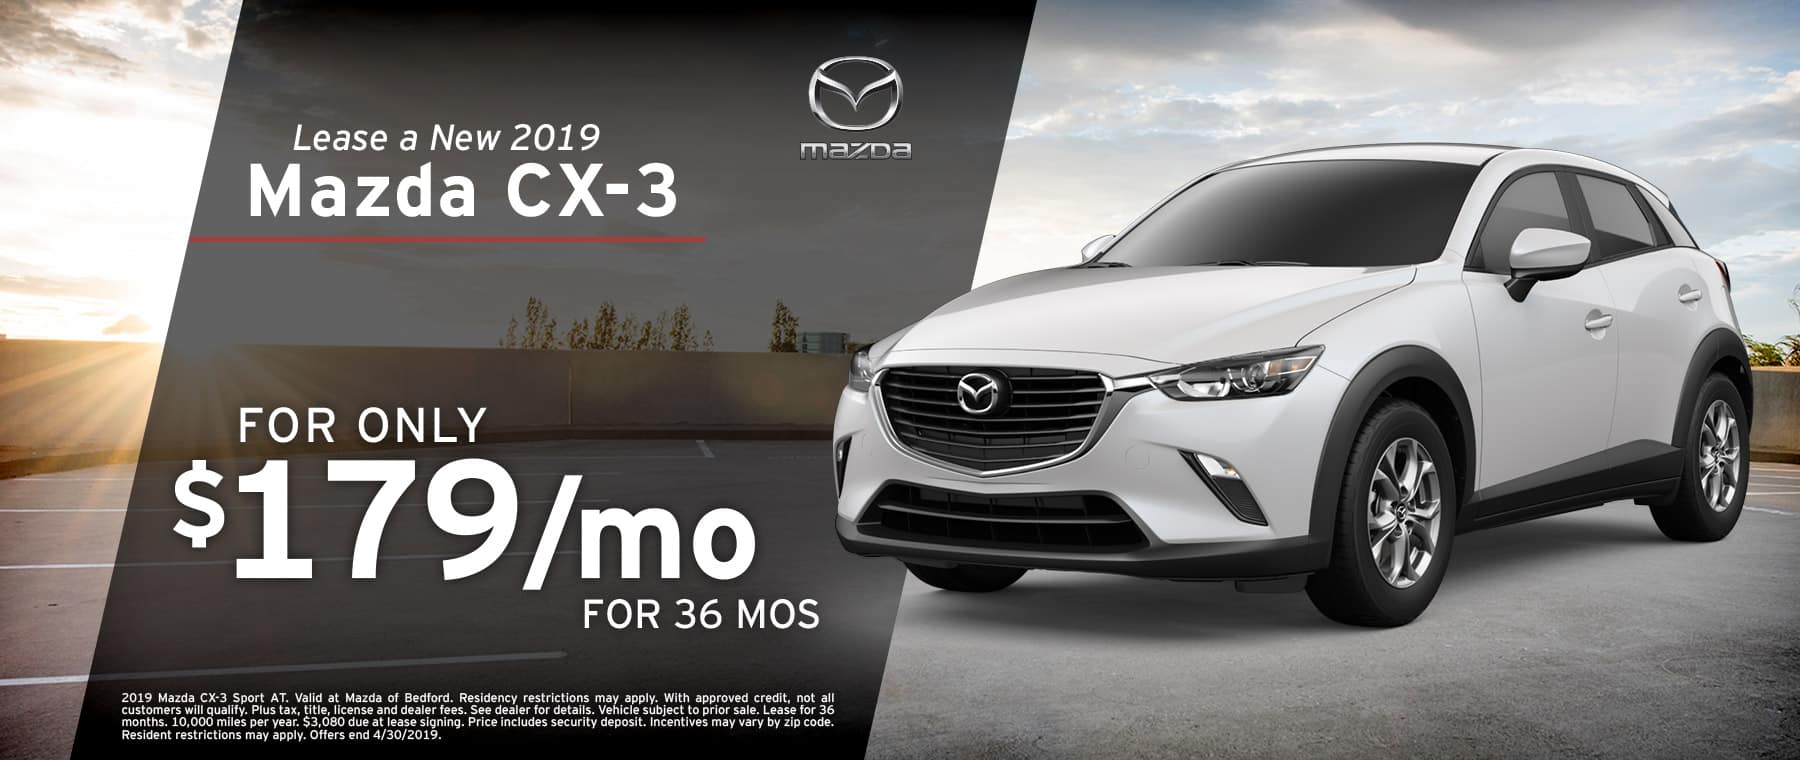 Save when you lease a 2019 Mazda CX-3 at Mazda of Bedford